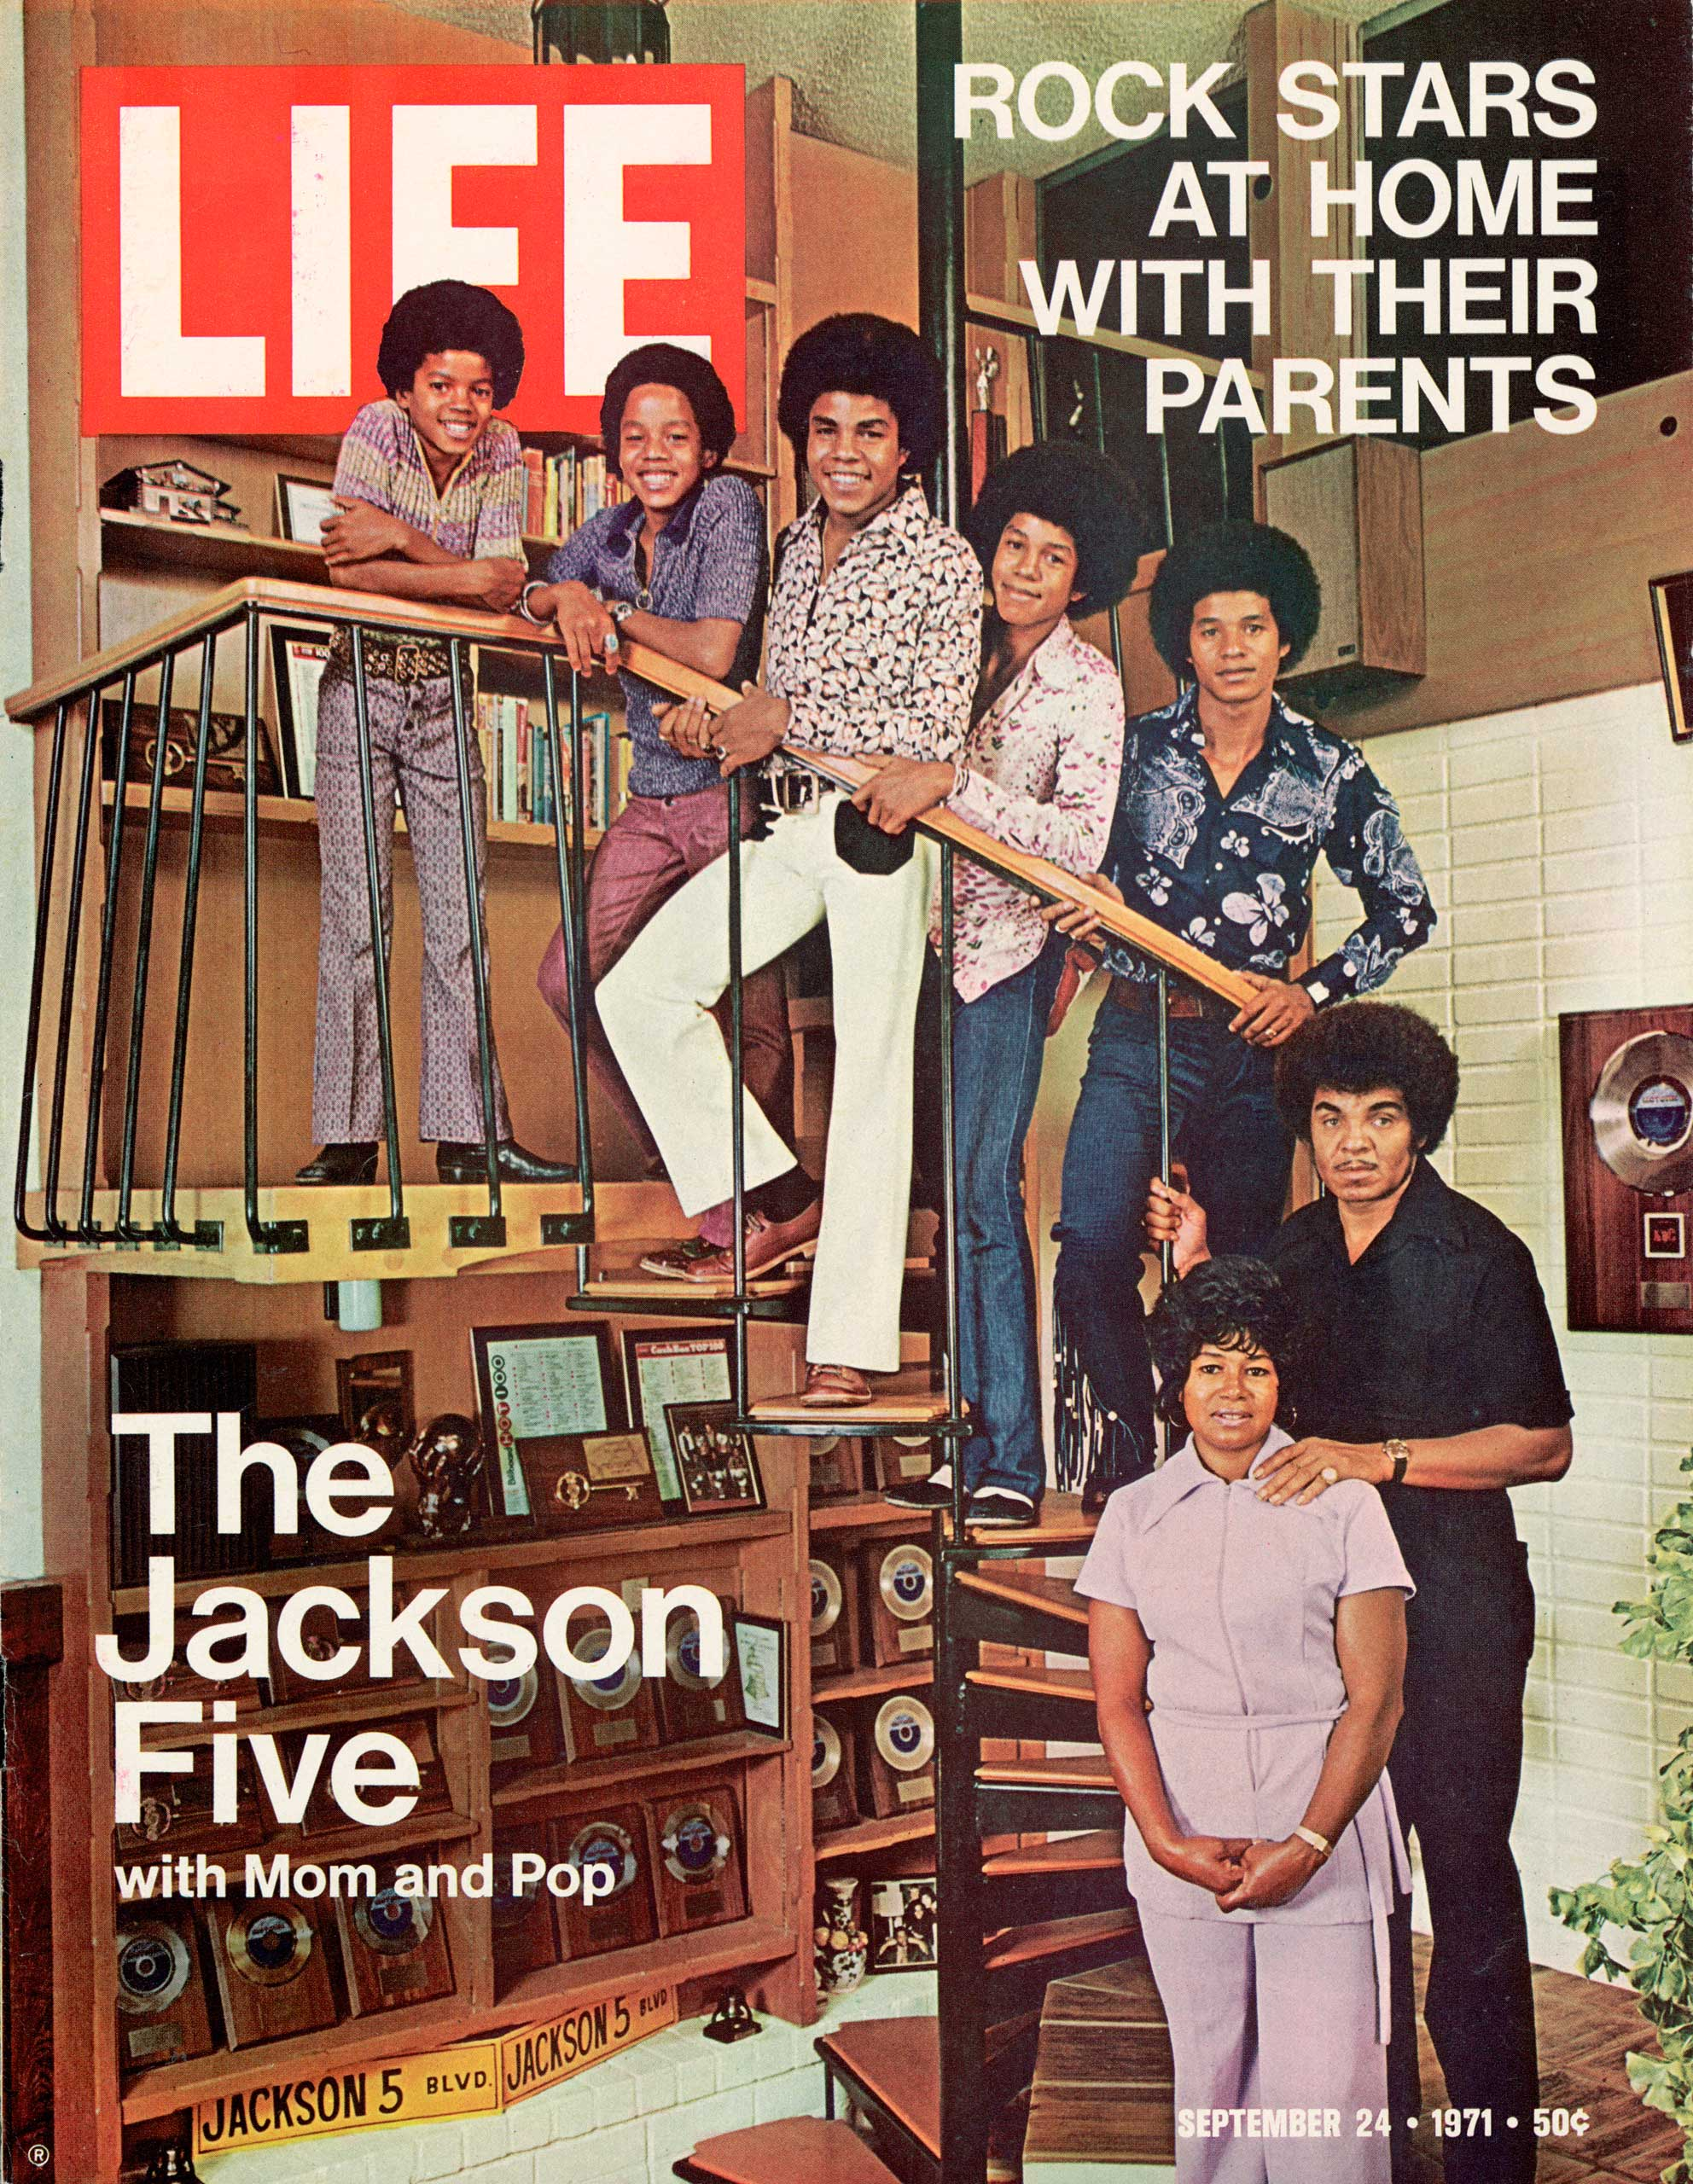 The Jackson 5 pose with their parents in Encino, Calif., in 1970.